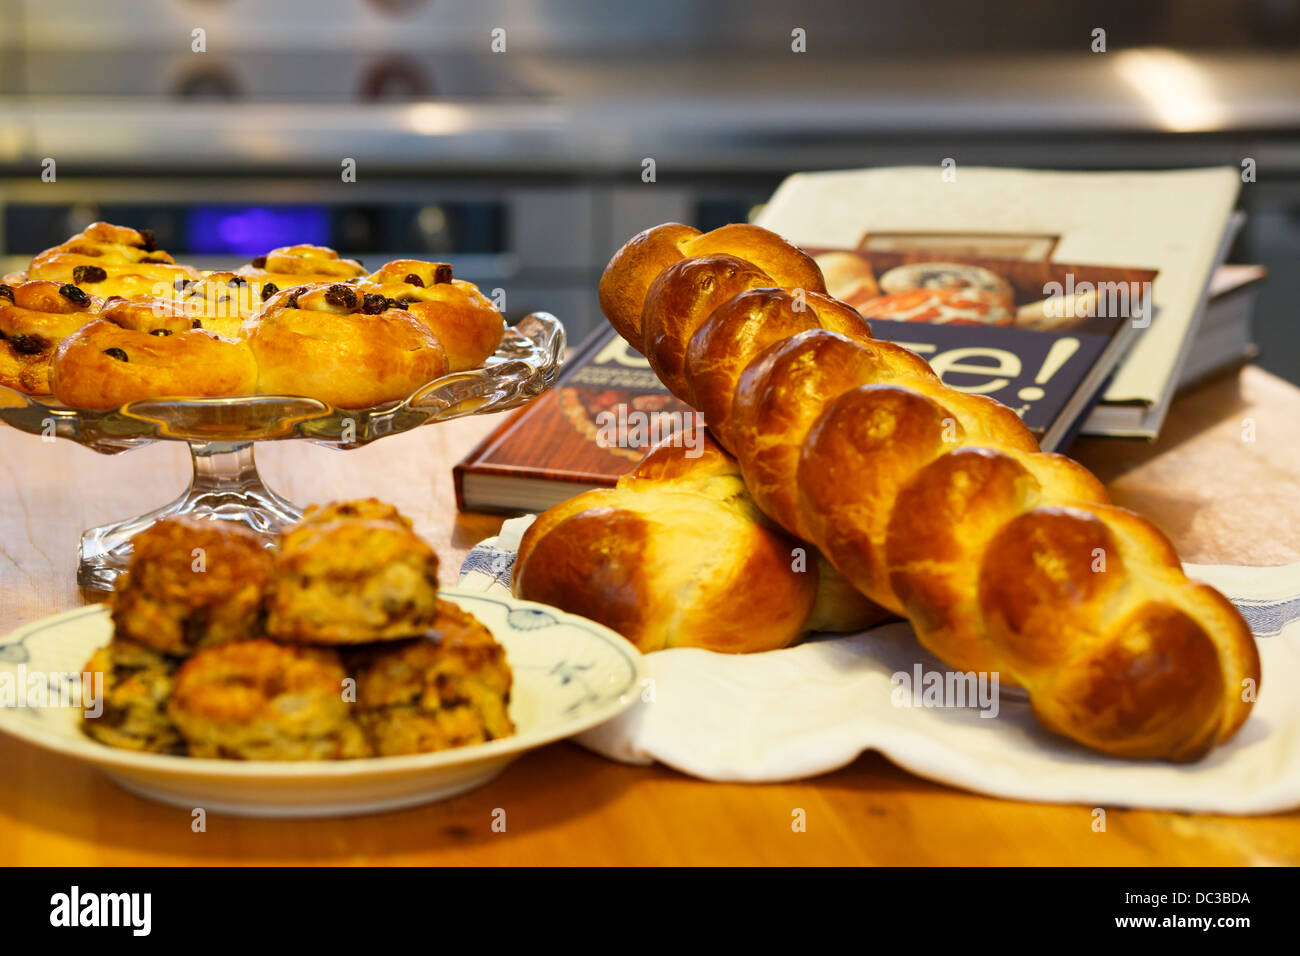 Mouth watering assortment of bakery items - Stock Image